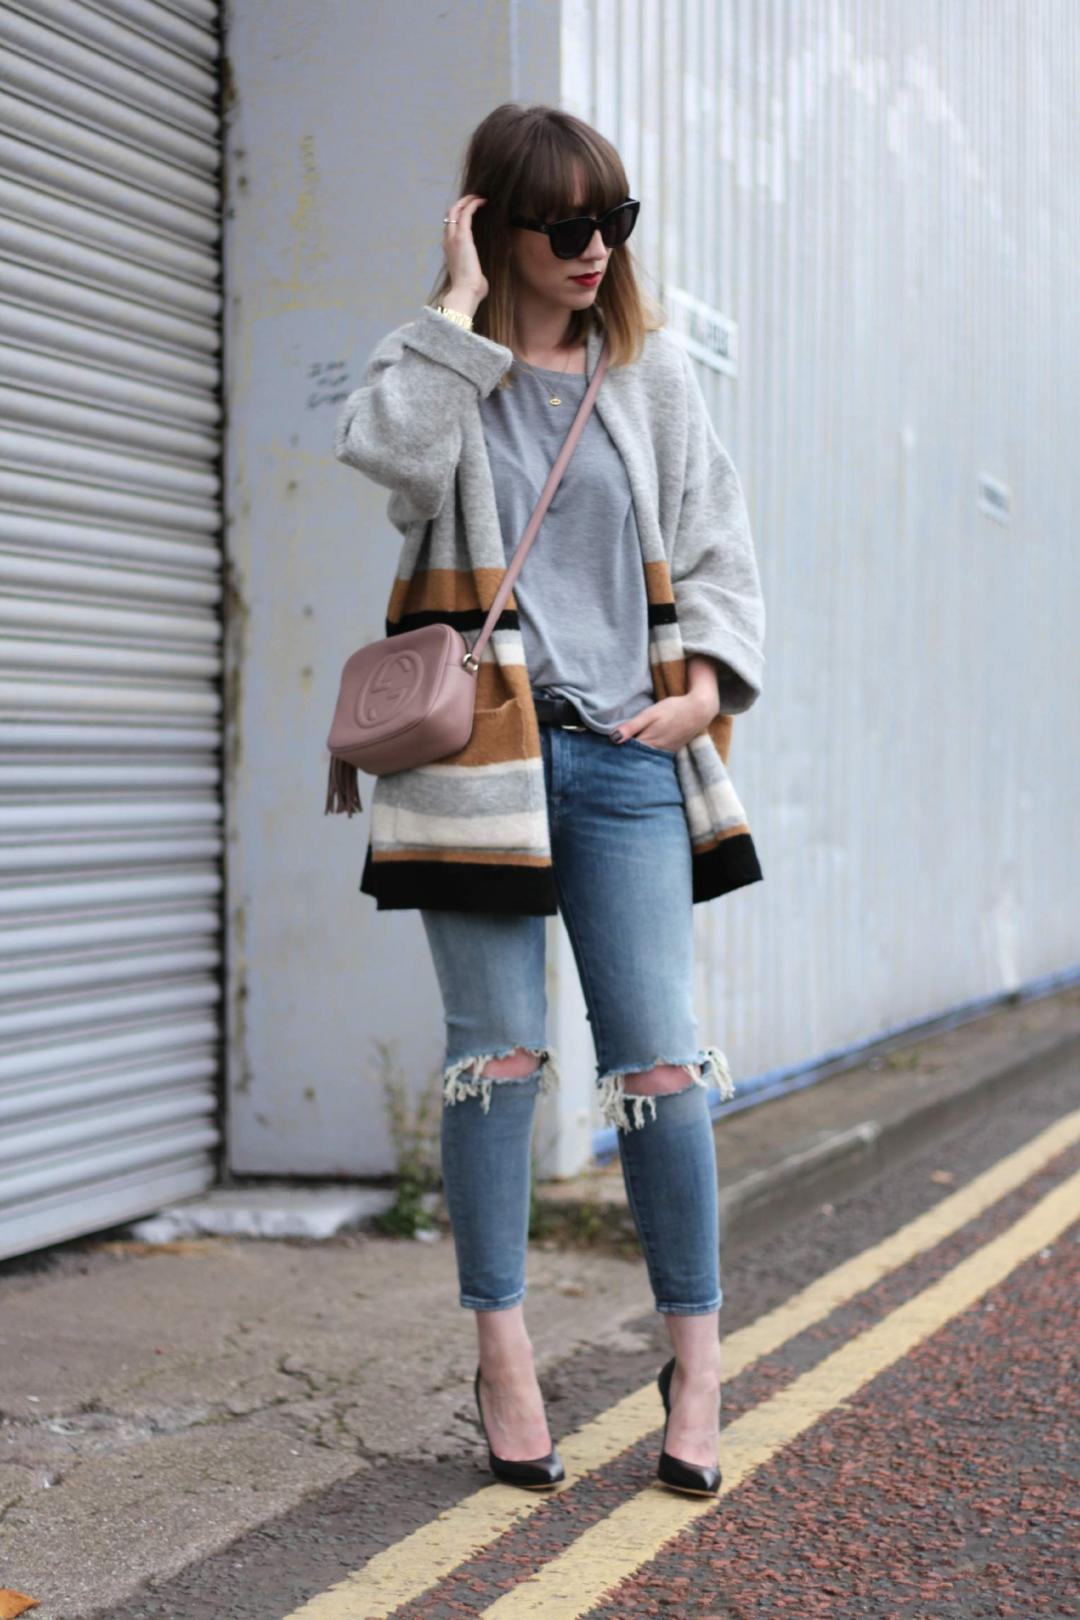 topshop cardgian 7 for all mankind josie jeans gucci soho disco bag